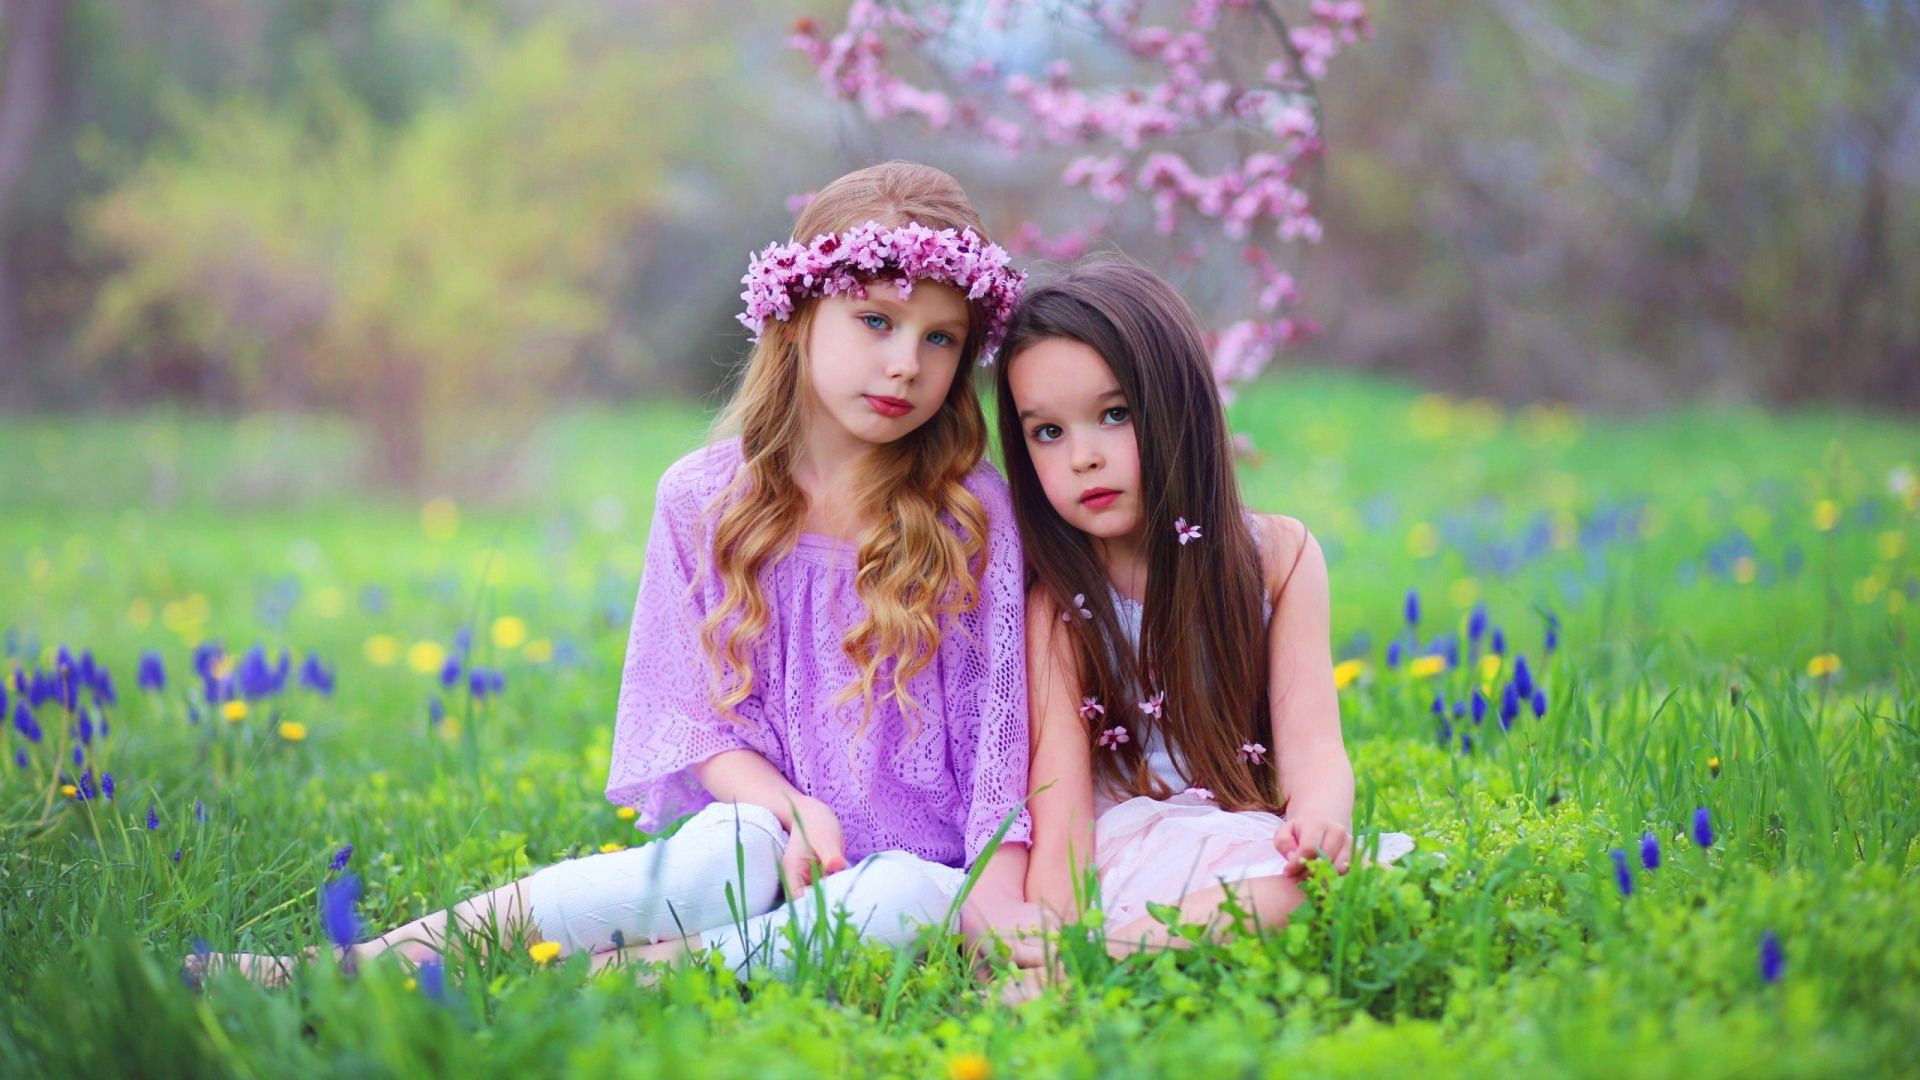 Beautiful Wallpapers With Heartfelt Quotes 10 Free Friendship Day Wallpaper Friendshipday Org